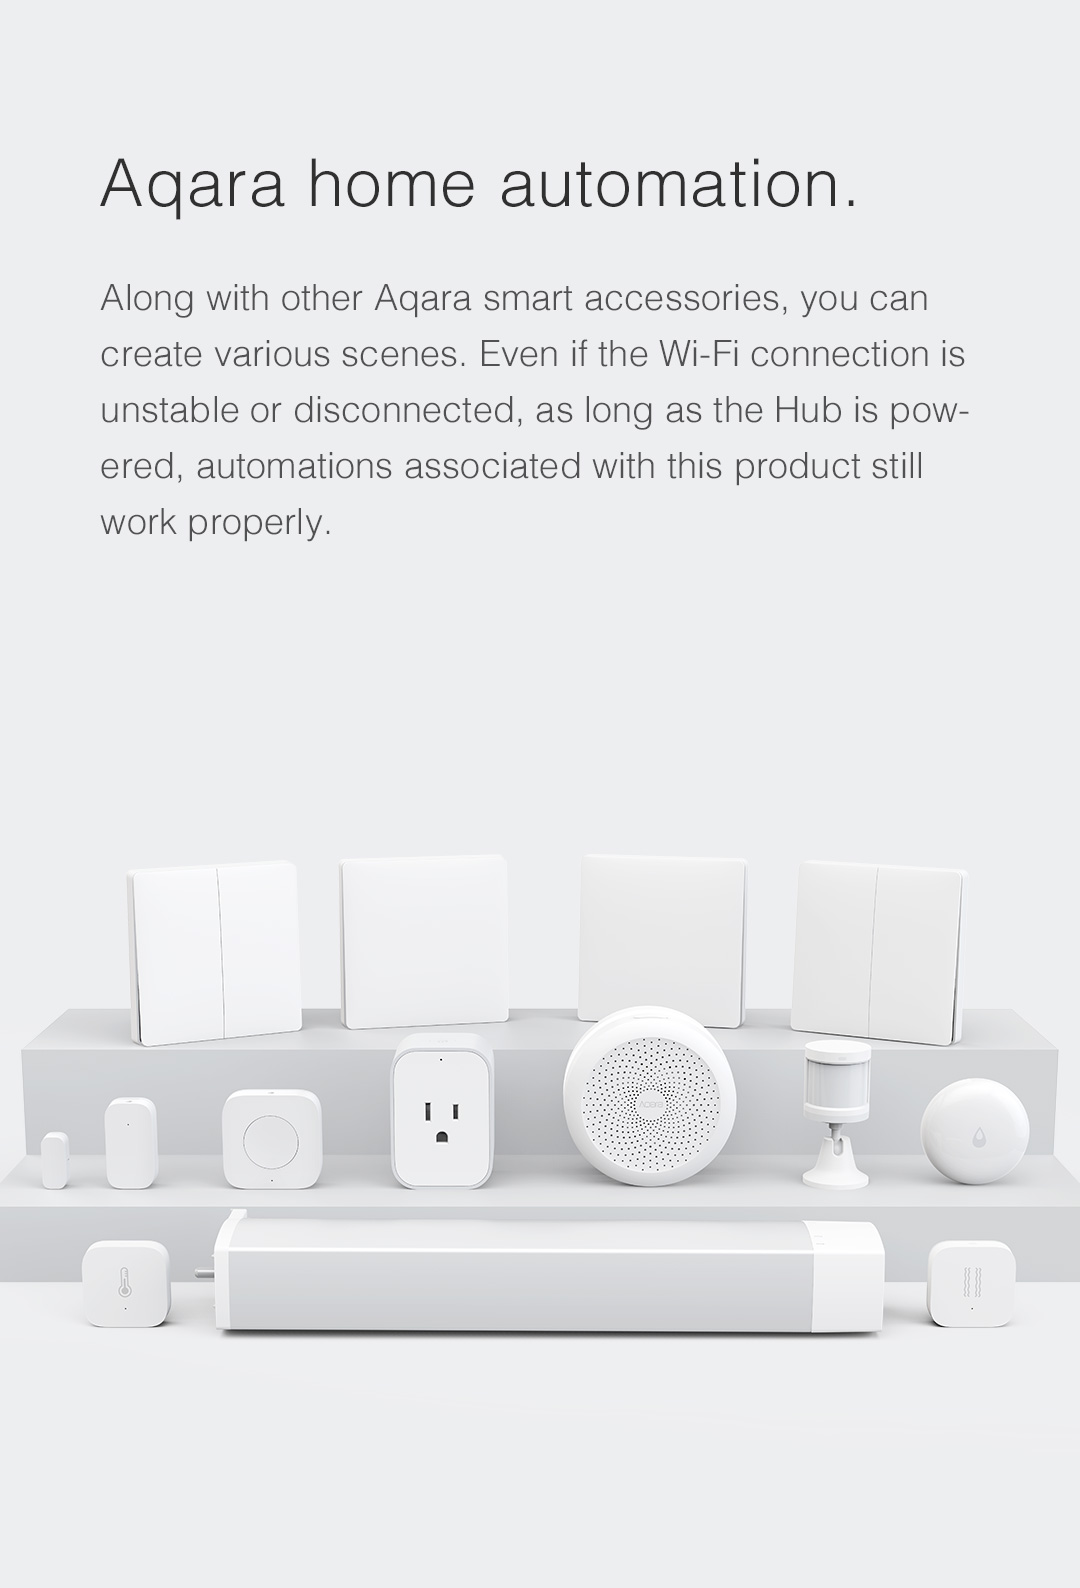 Aqara smart home products allow you to create endless combinations of use cases and customized scenes.